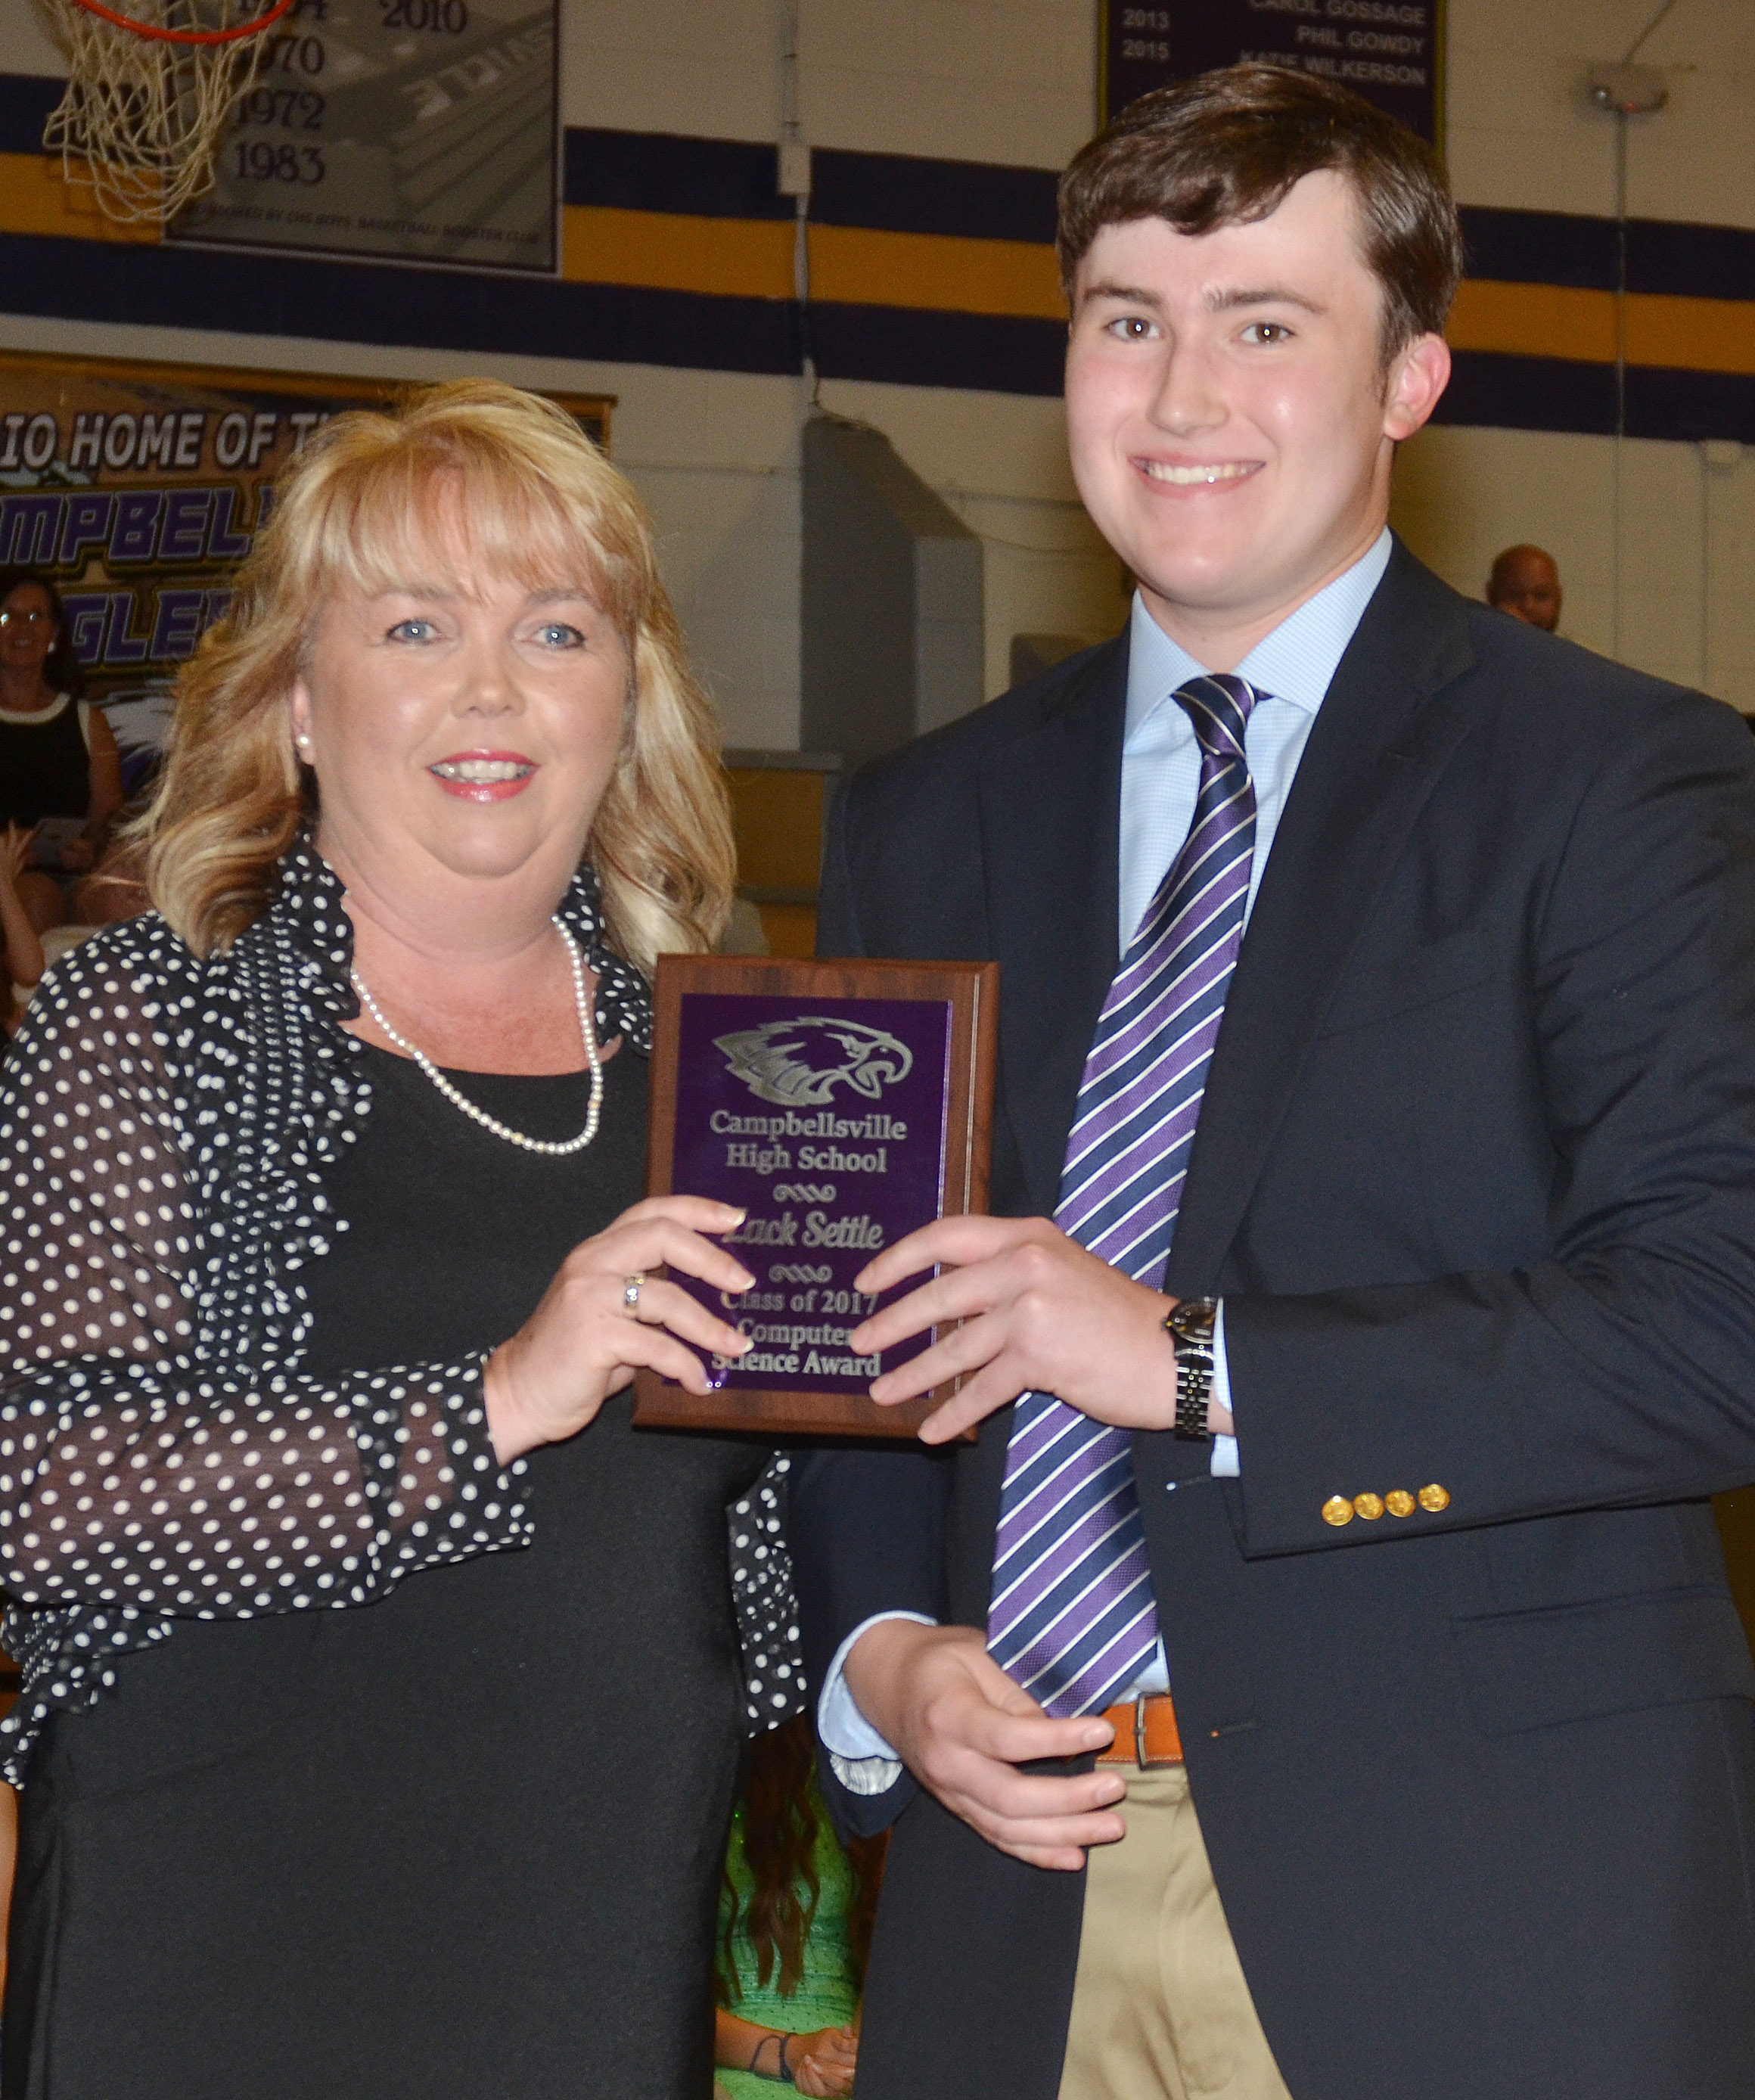 Zack Settle receives the computer science award. He is pictured with computer science teacher Sonya Kessler.